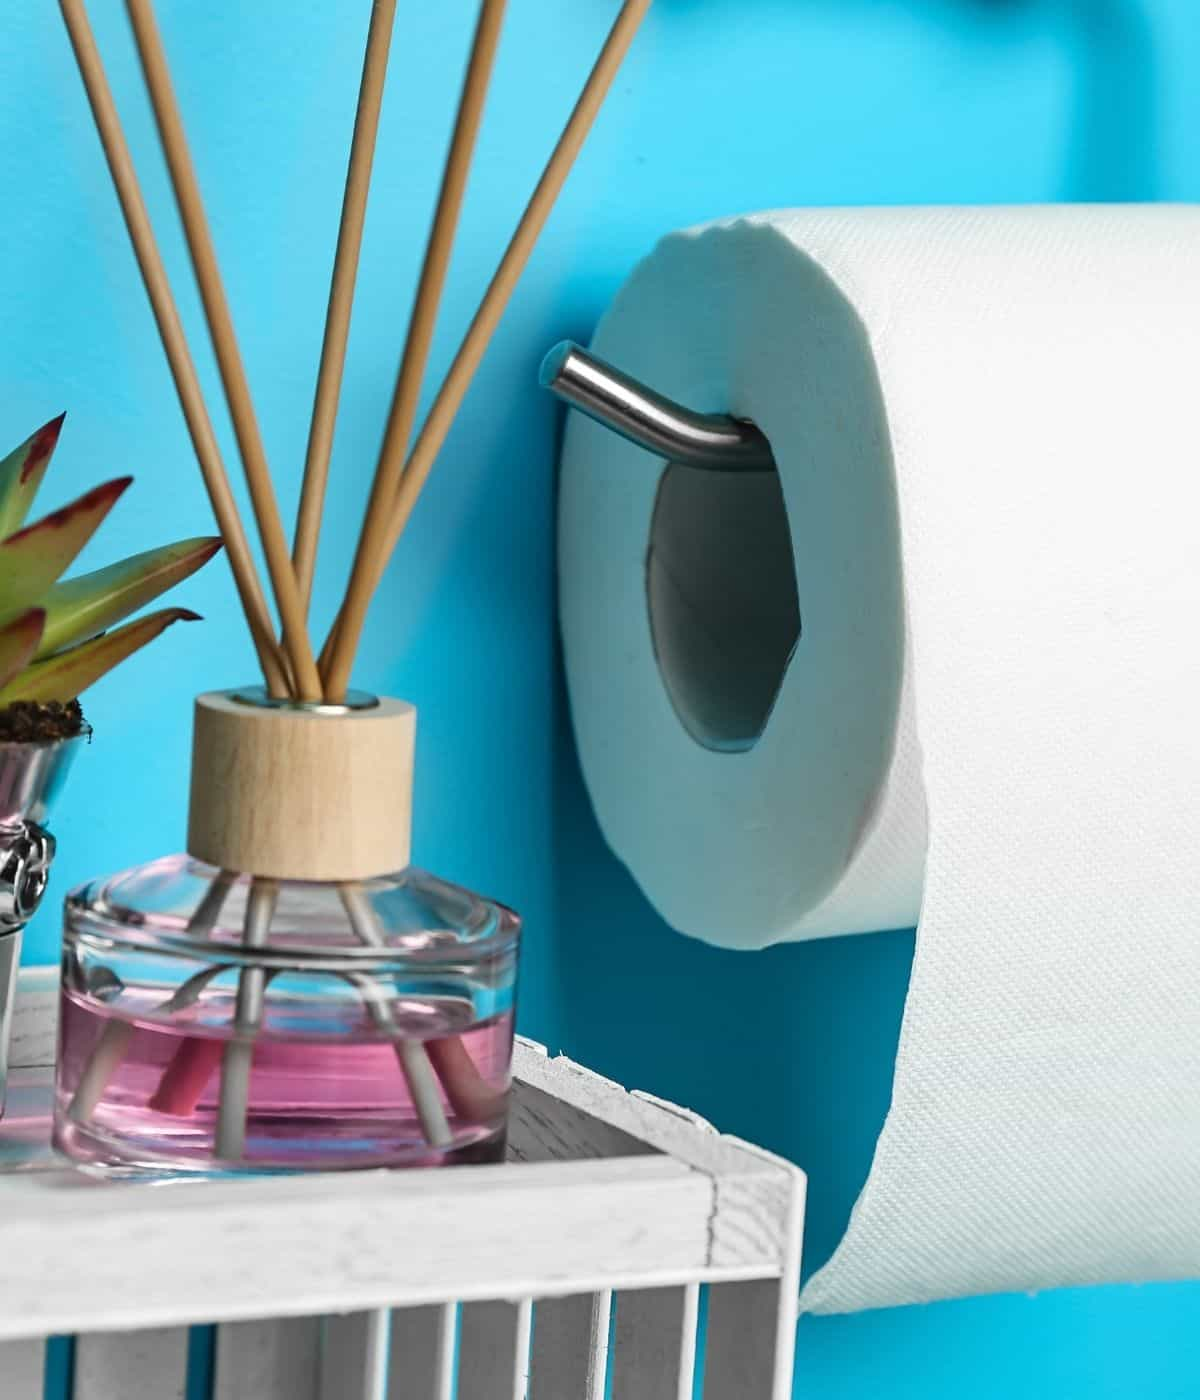 Toilet paper holder next to reed diffuser in bathroom.